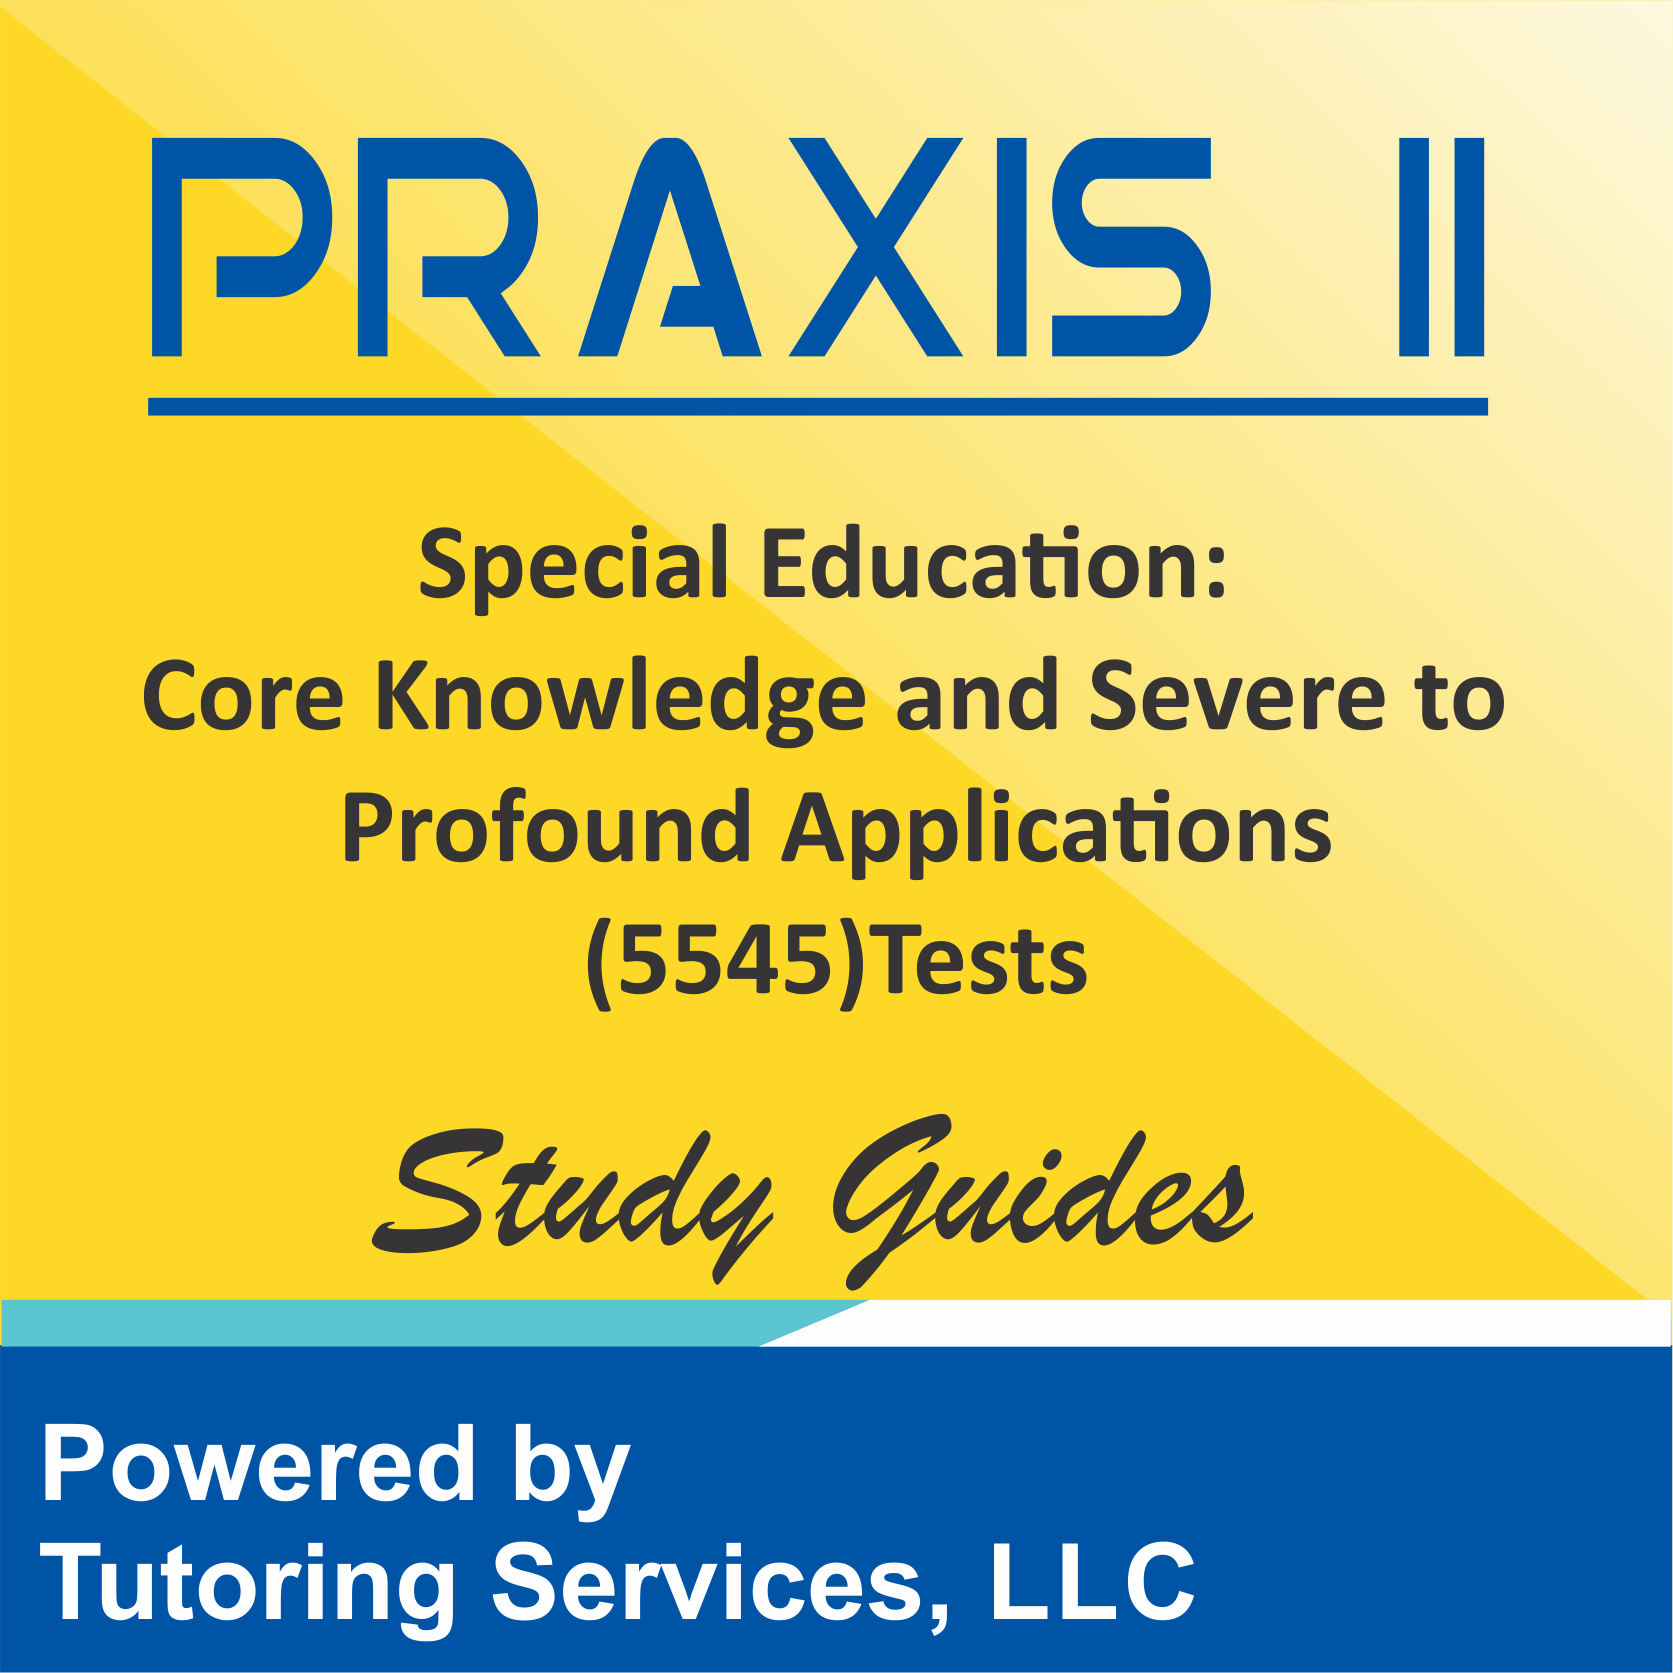 Praxis II Special Education: Core Knowledge and Applications (5354) Test